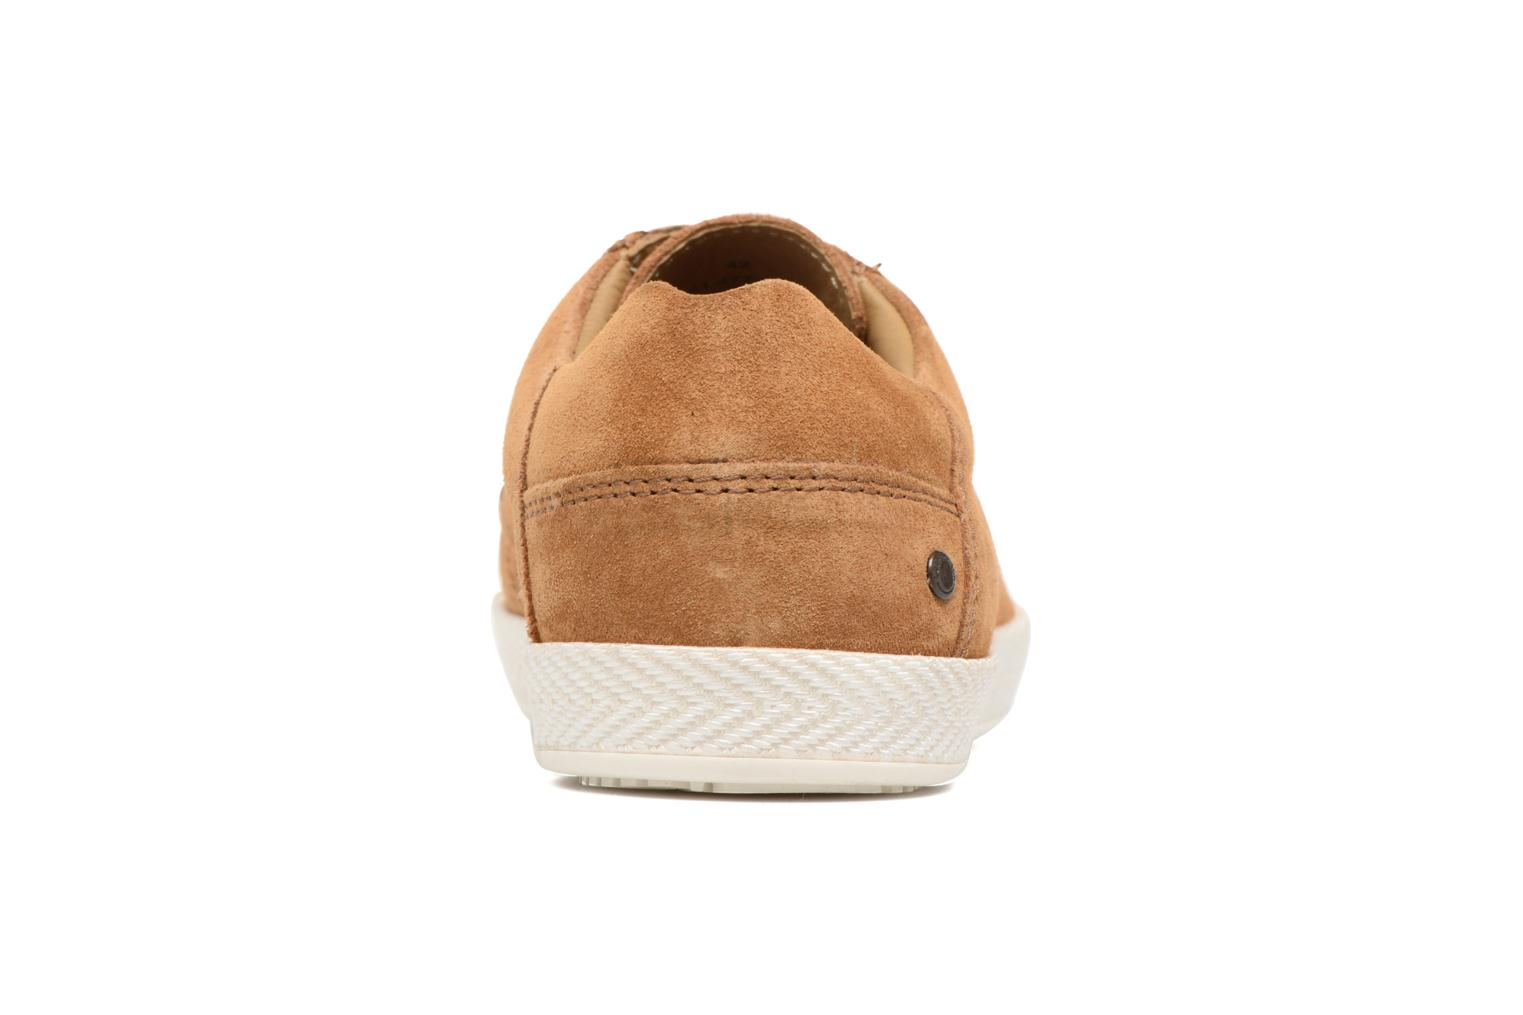 Keel London London tan tan Base Base Keel suede suede Base Base London London tan Keel suede IqwOt0xCWH